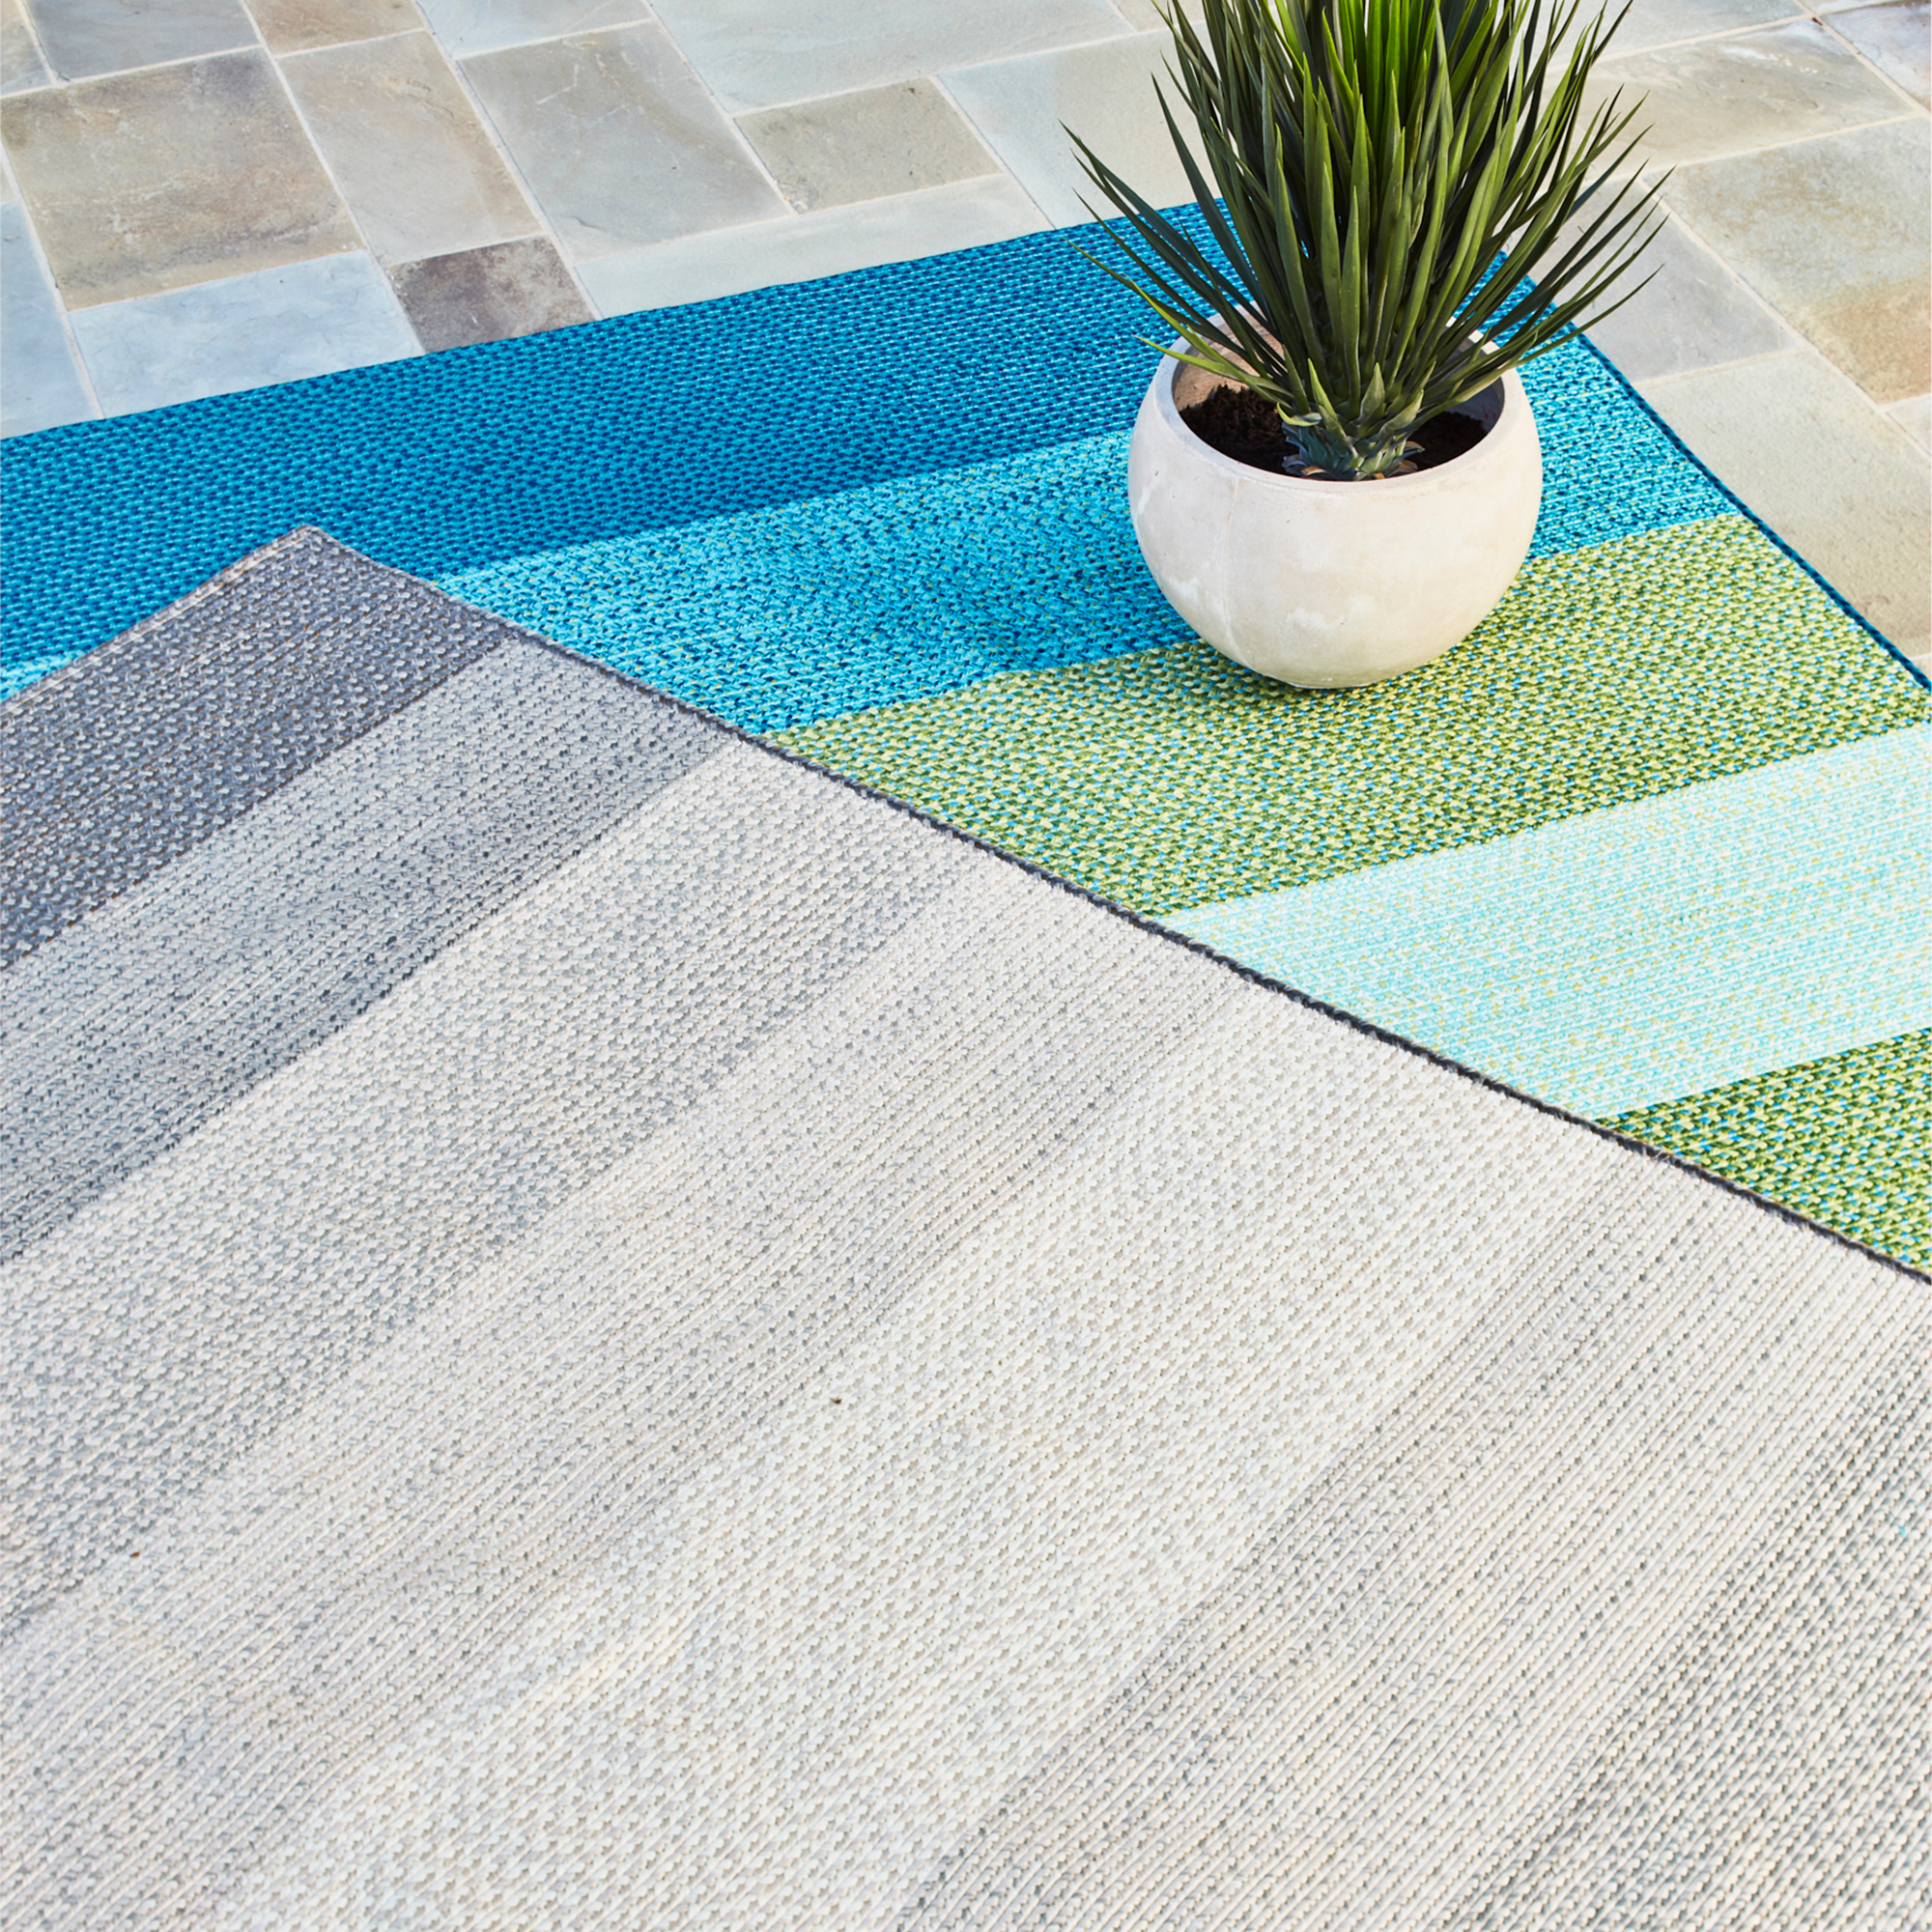 Awning Stripe Indoor/Outdoor Rug